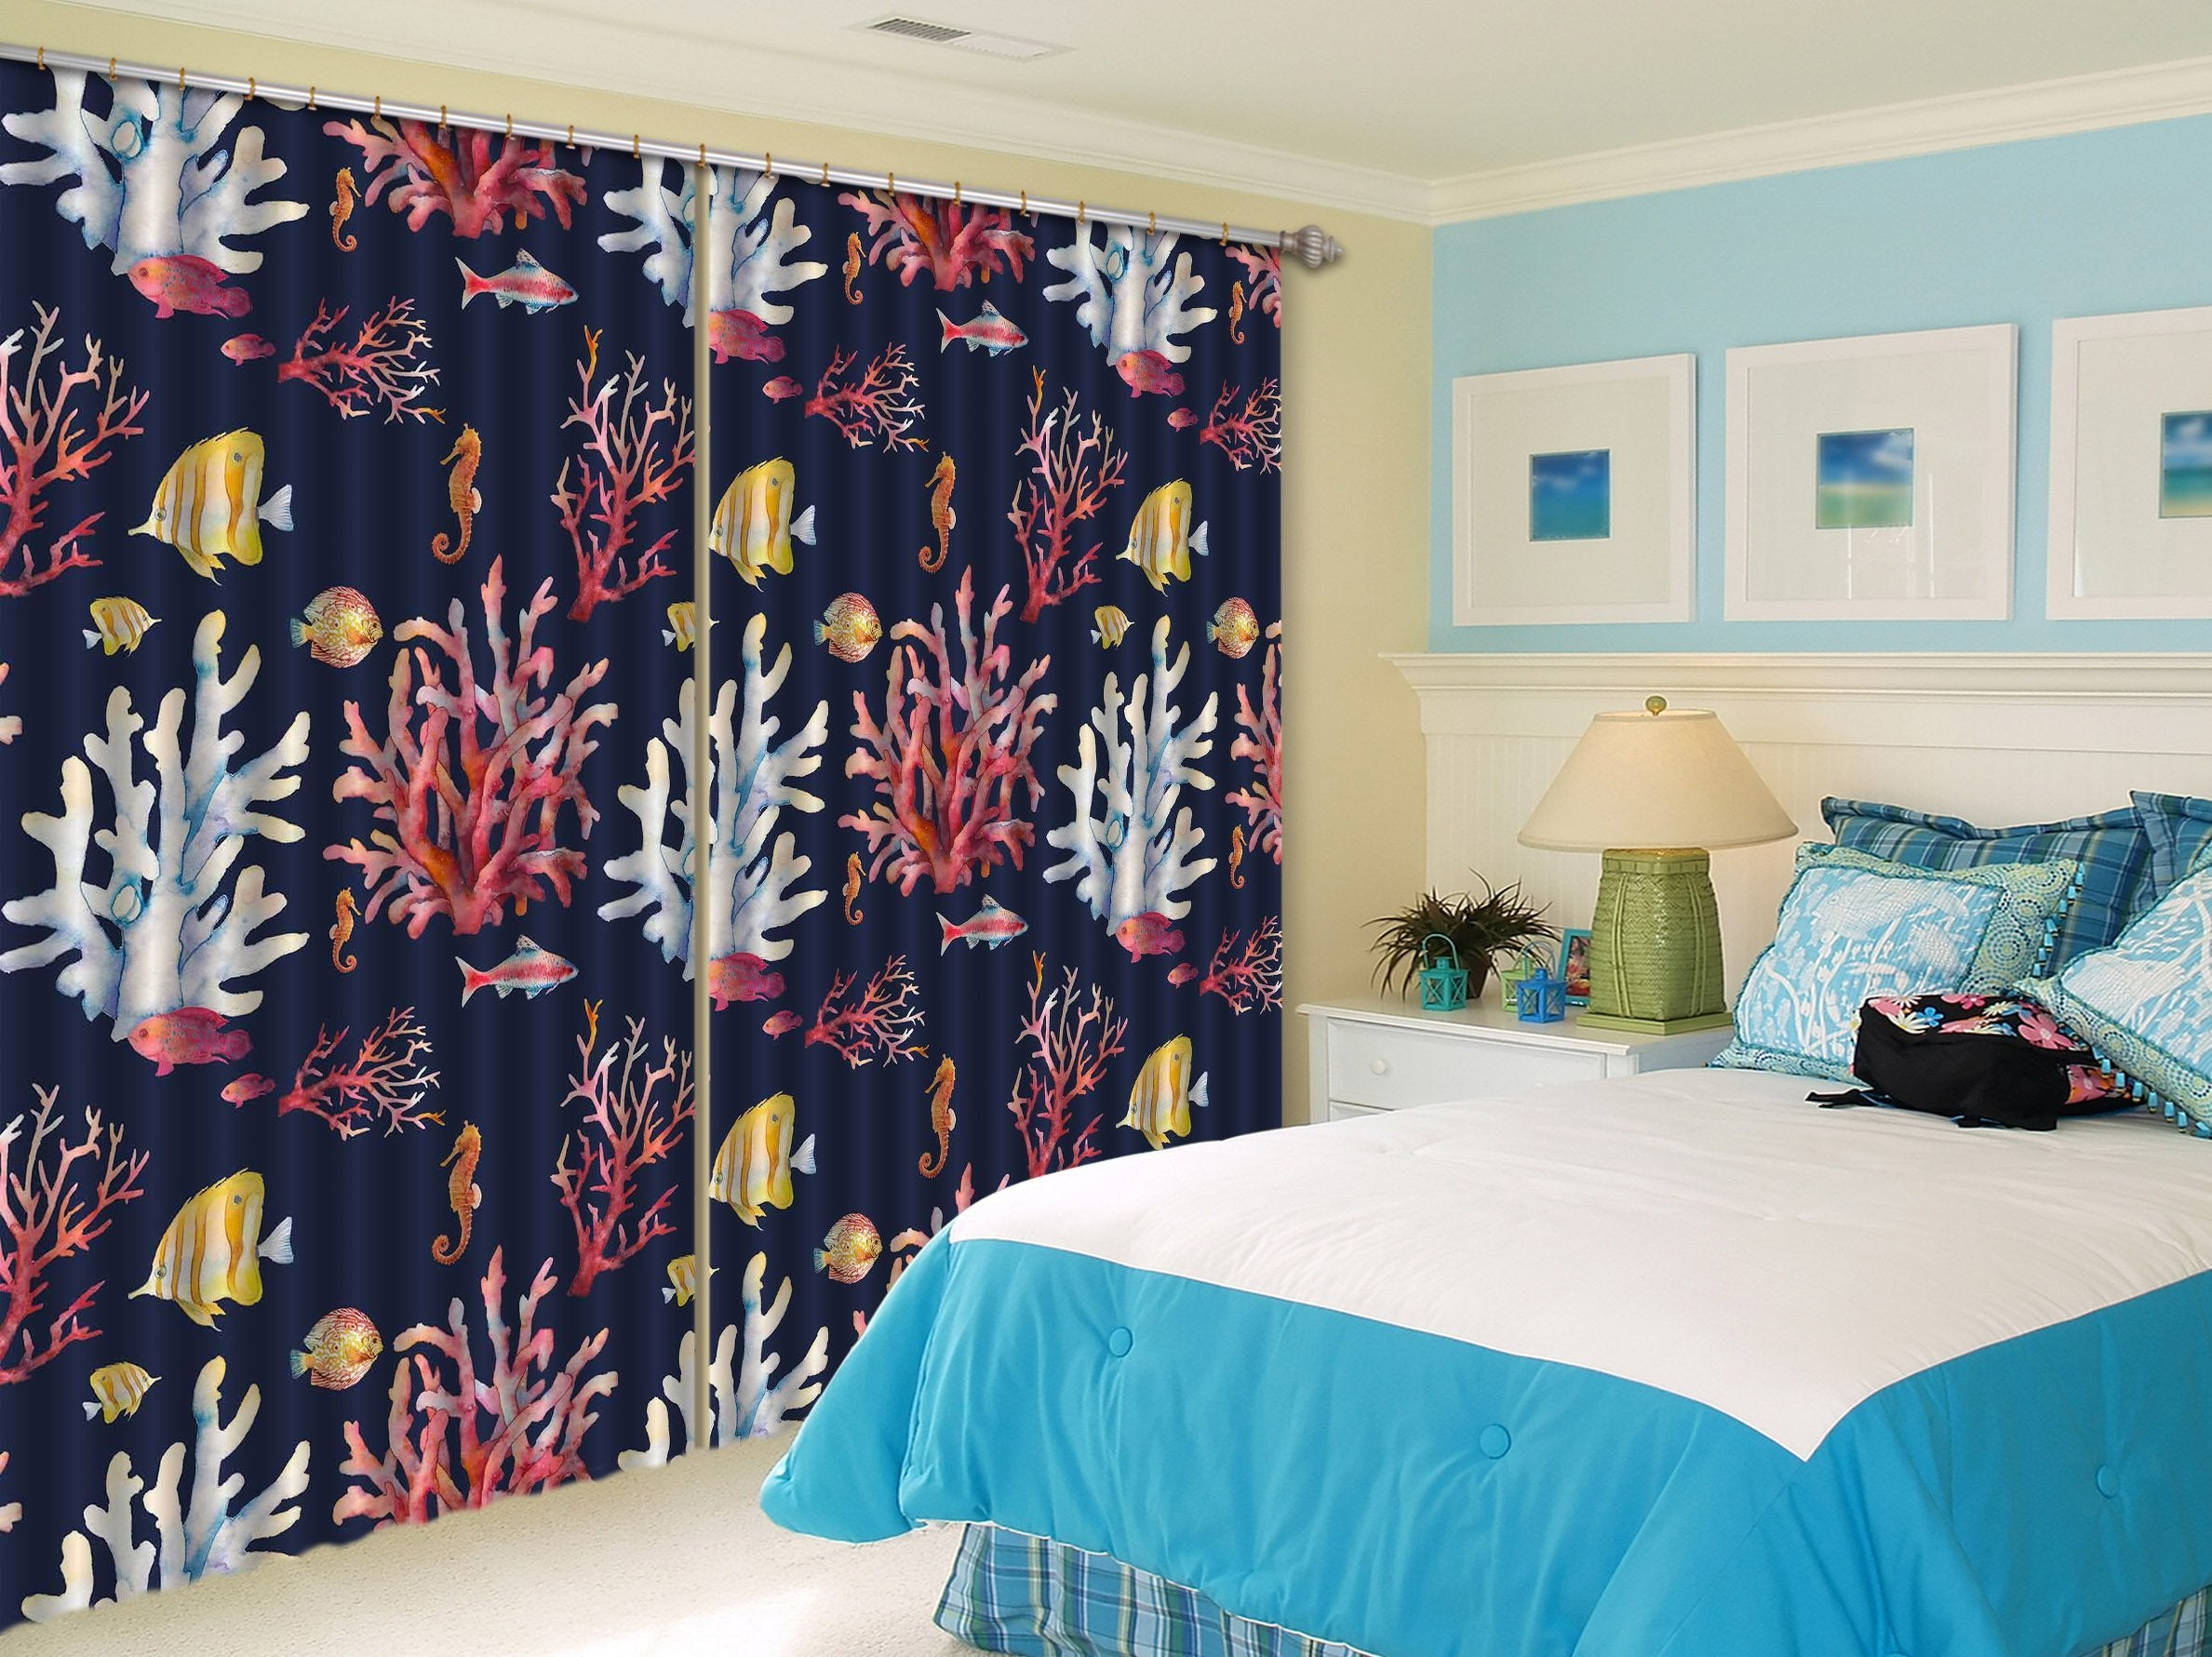 3D Corals And Fishes 2345 Curtains Drapes Wallpaper AJ Wallpaper